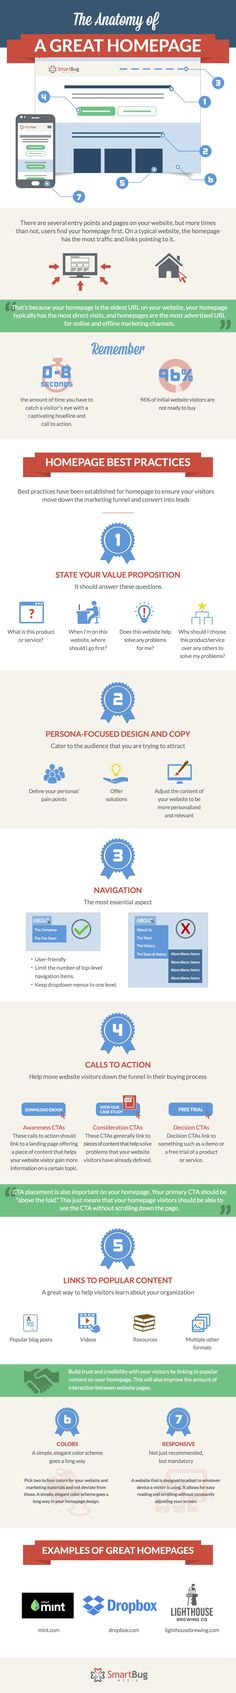 The Anatomy of a Great Homepage [Infographic]